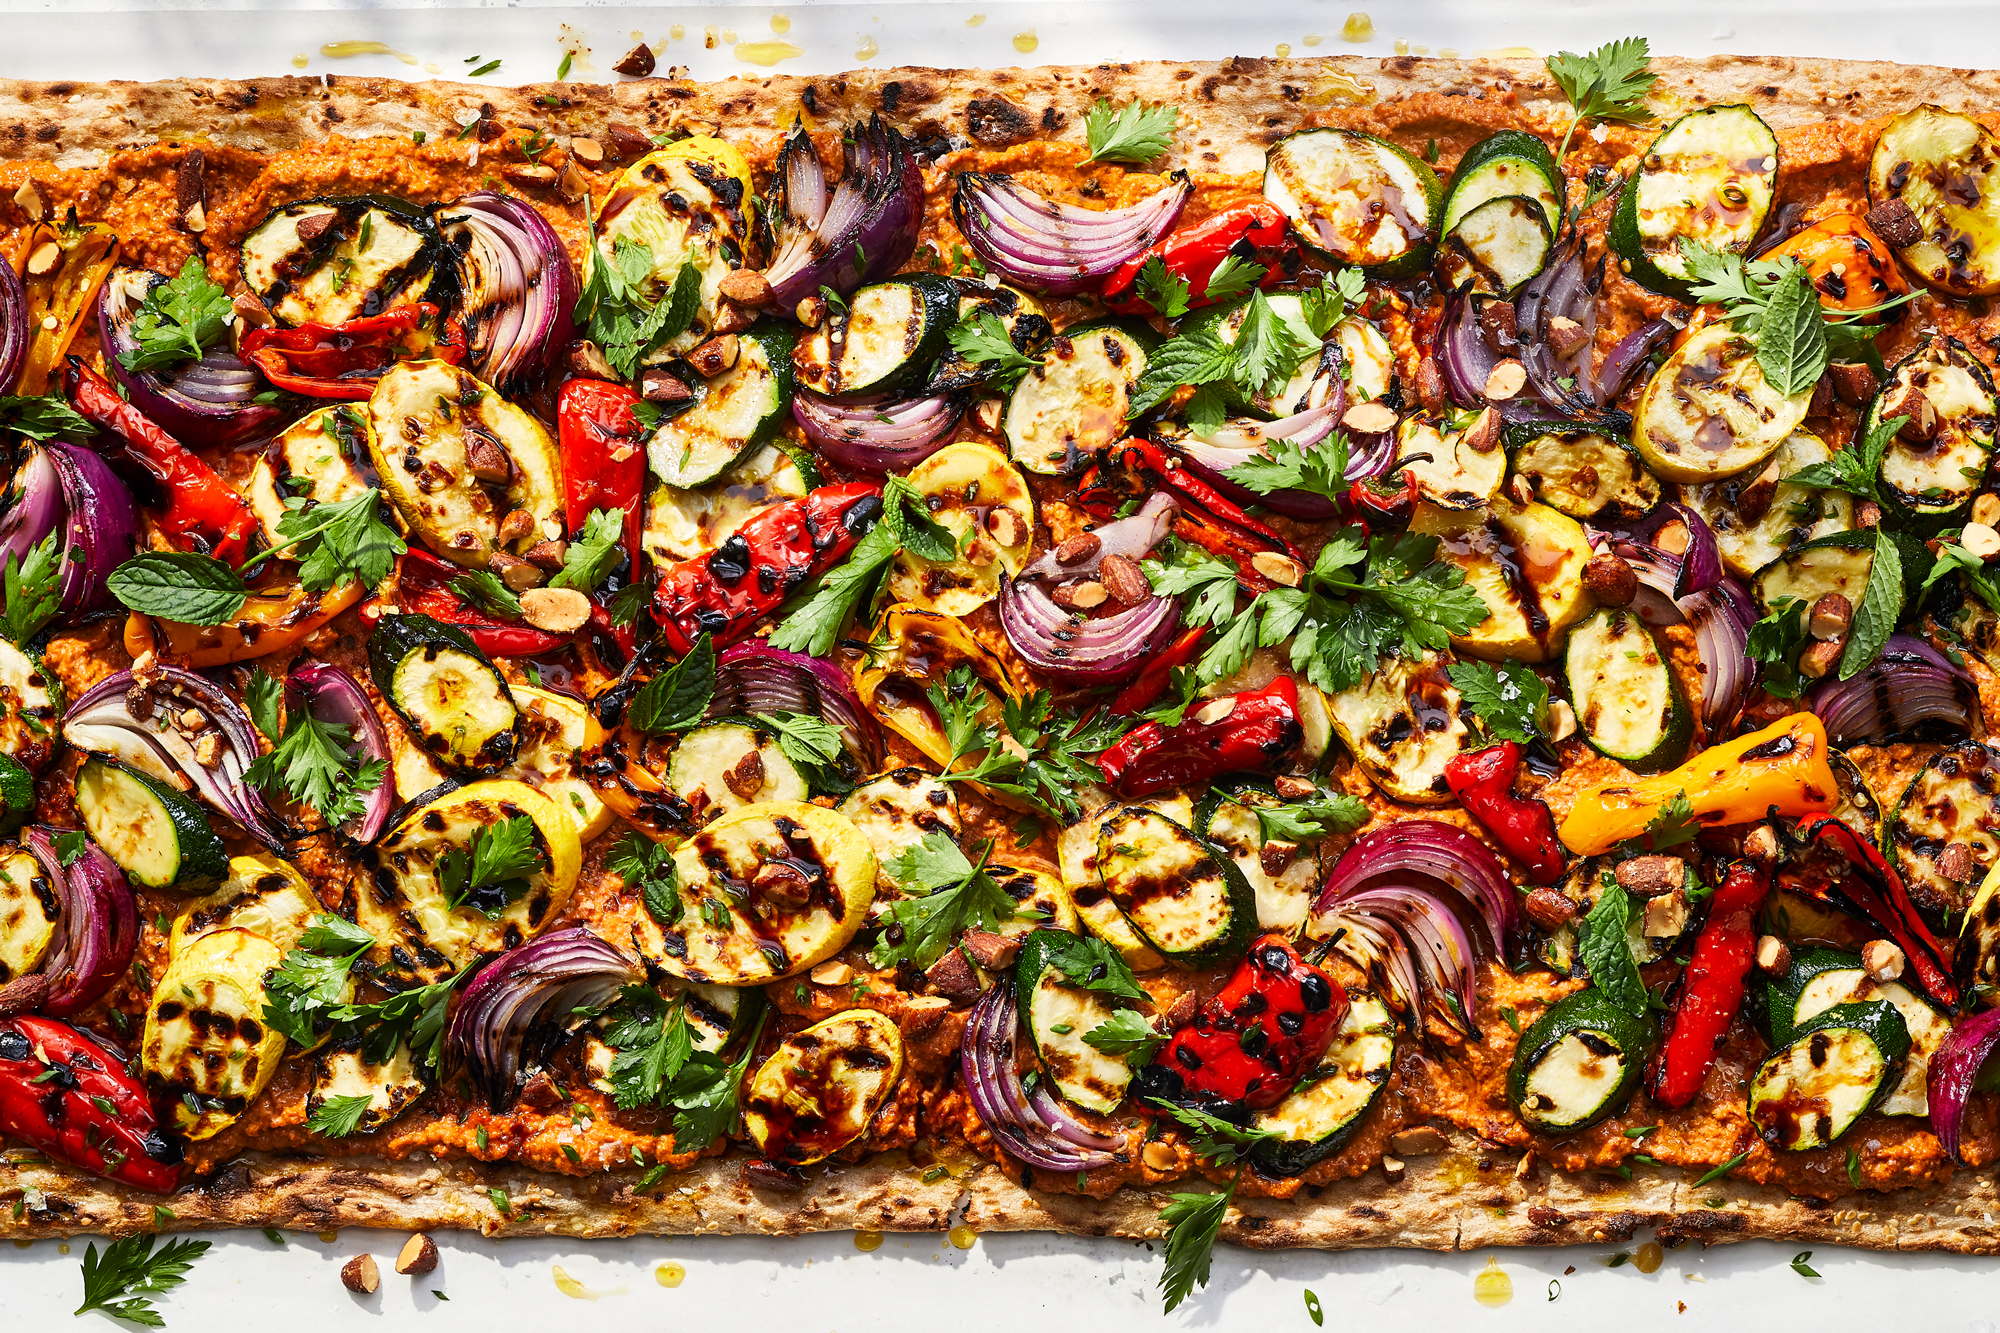 Grilled Vegetable Flatbread with Smoked Almond Muhammara Recipe